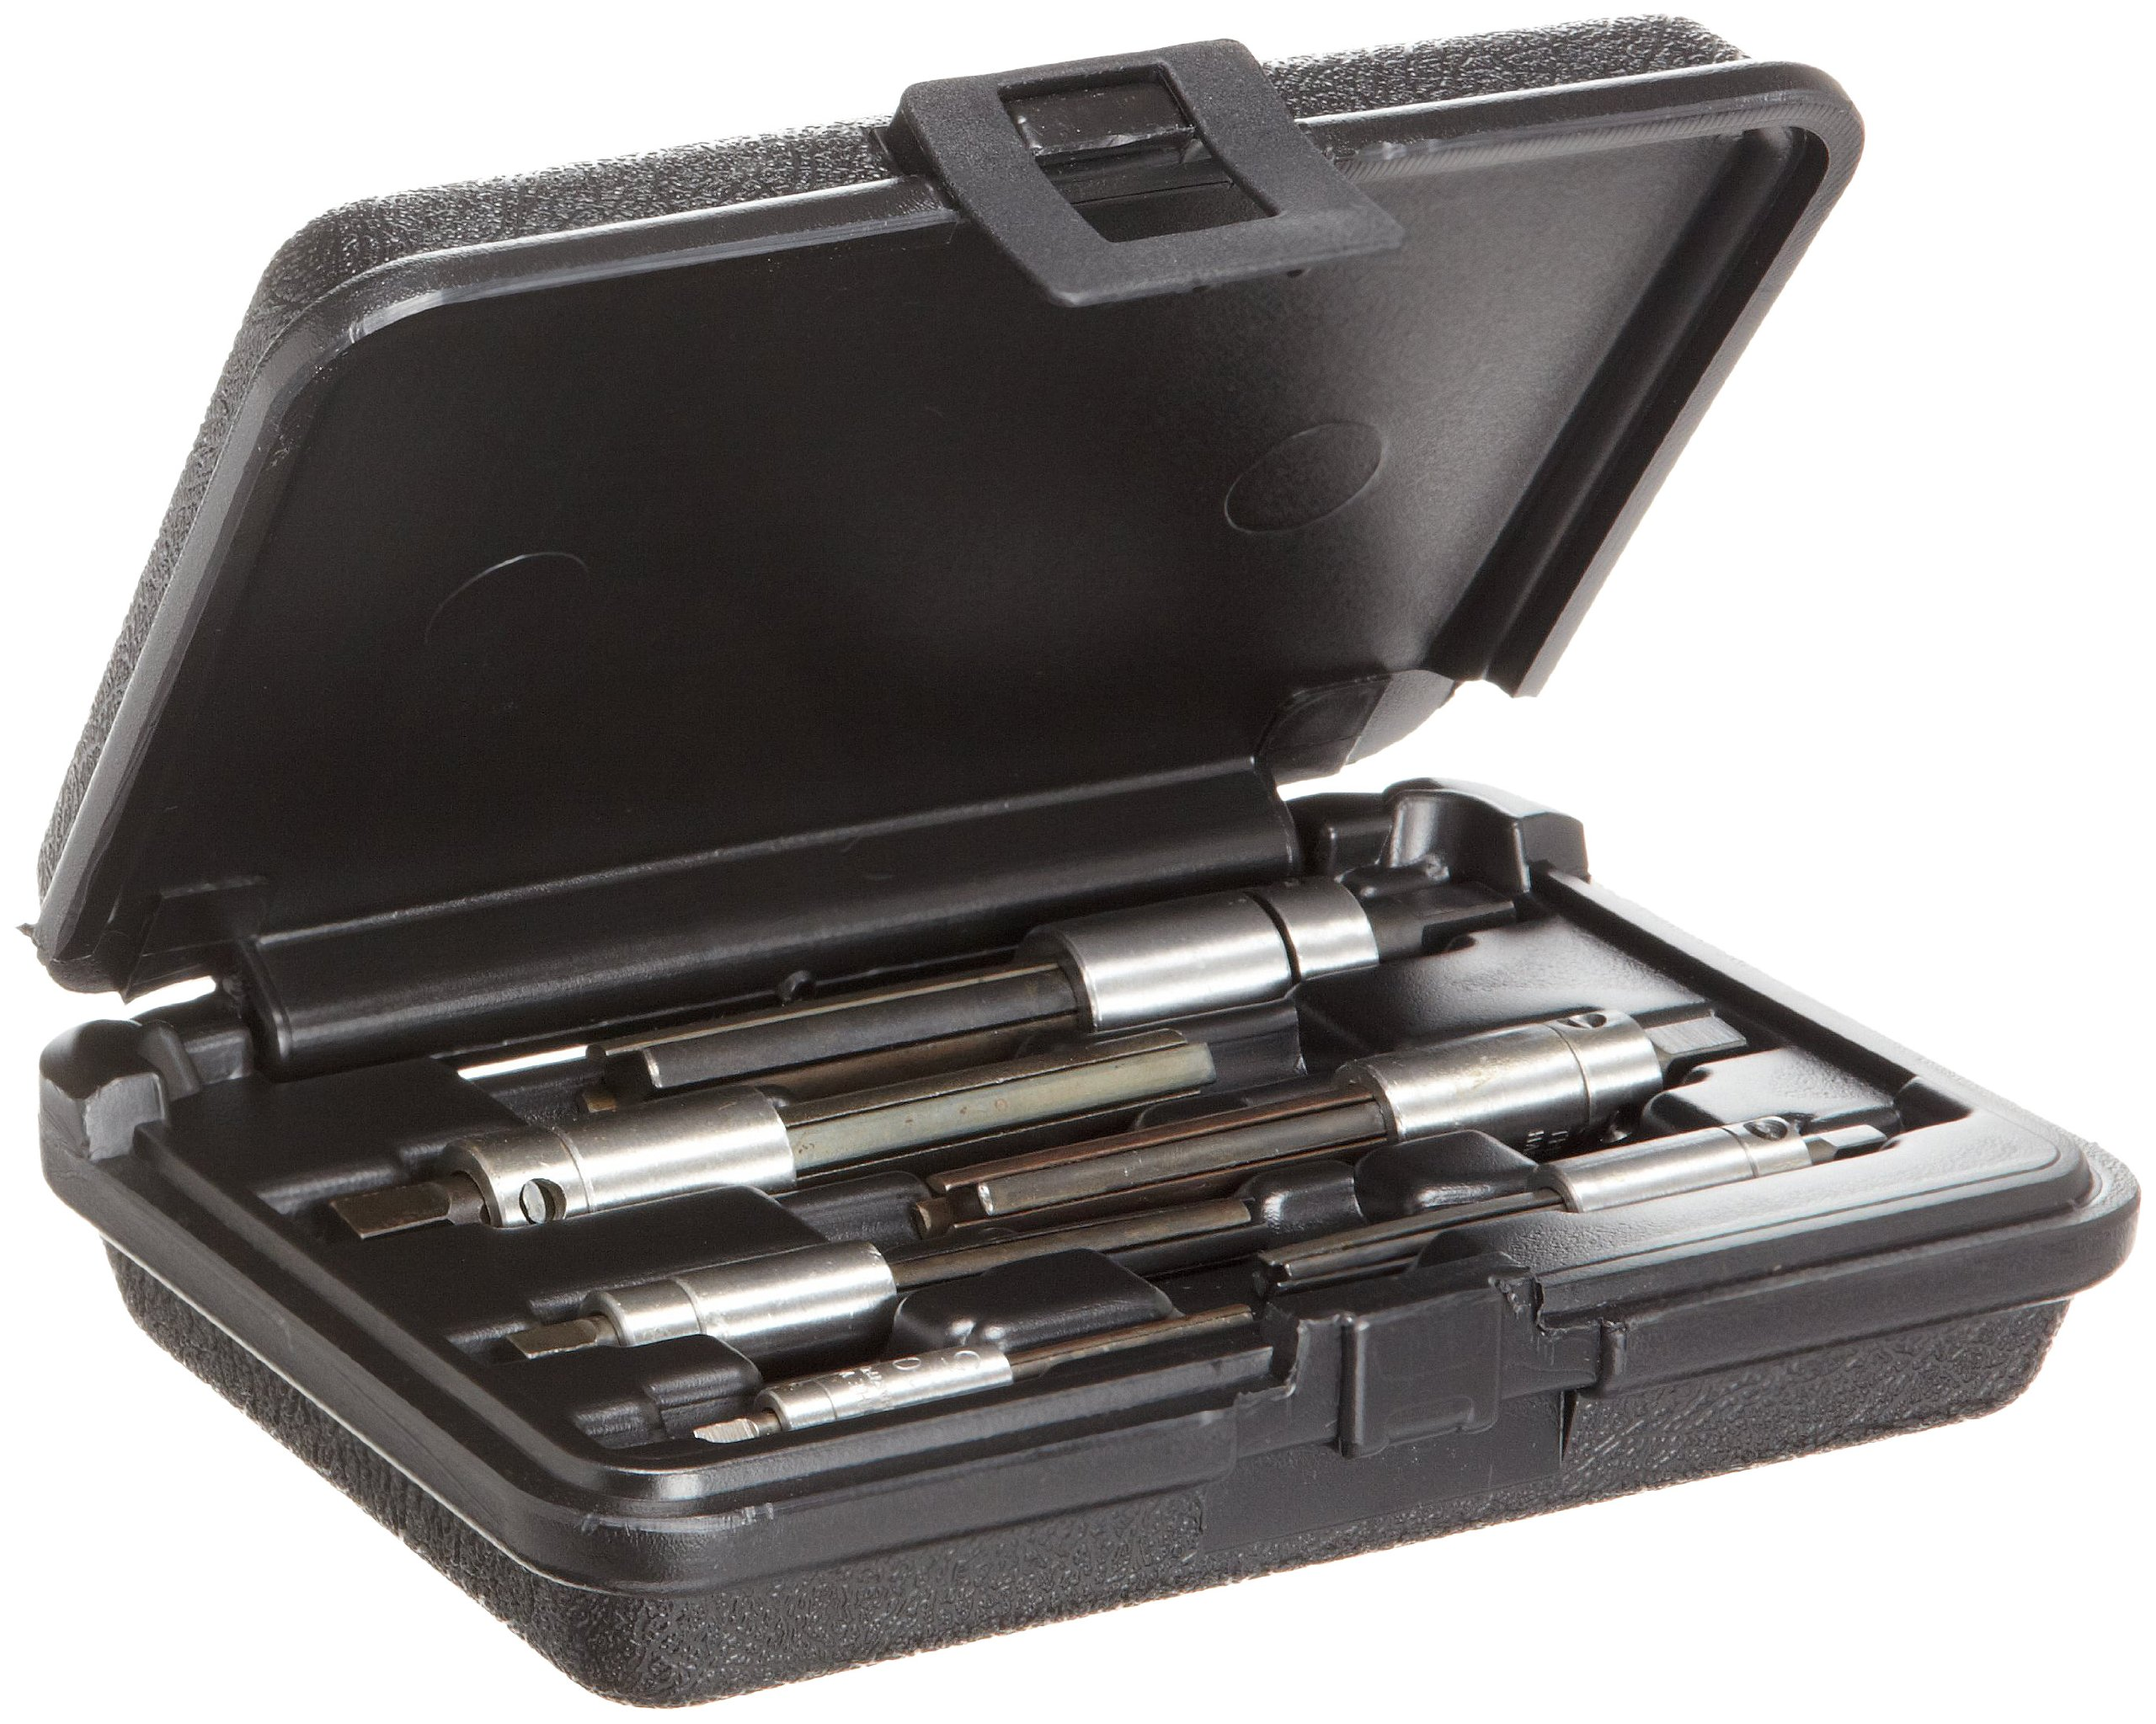 Walton 18001-3 6 Piece 3 Flute Tap Extractor Set With Square Shank by Walton